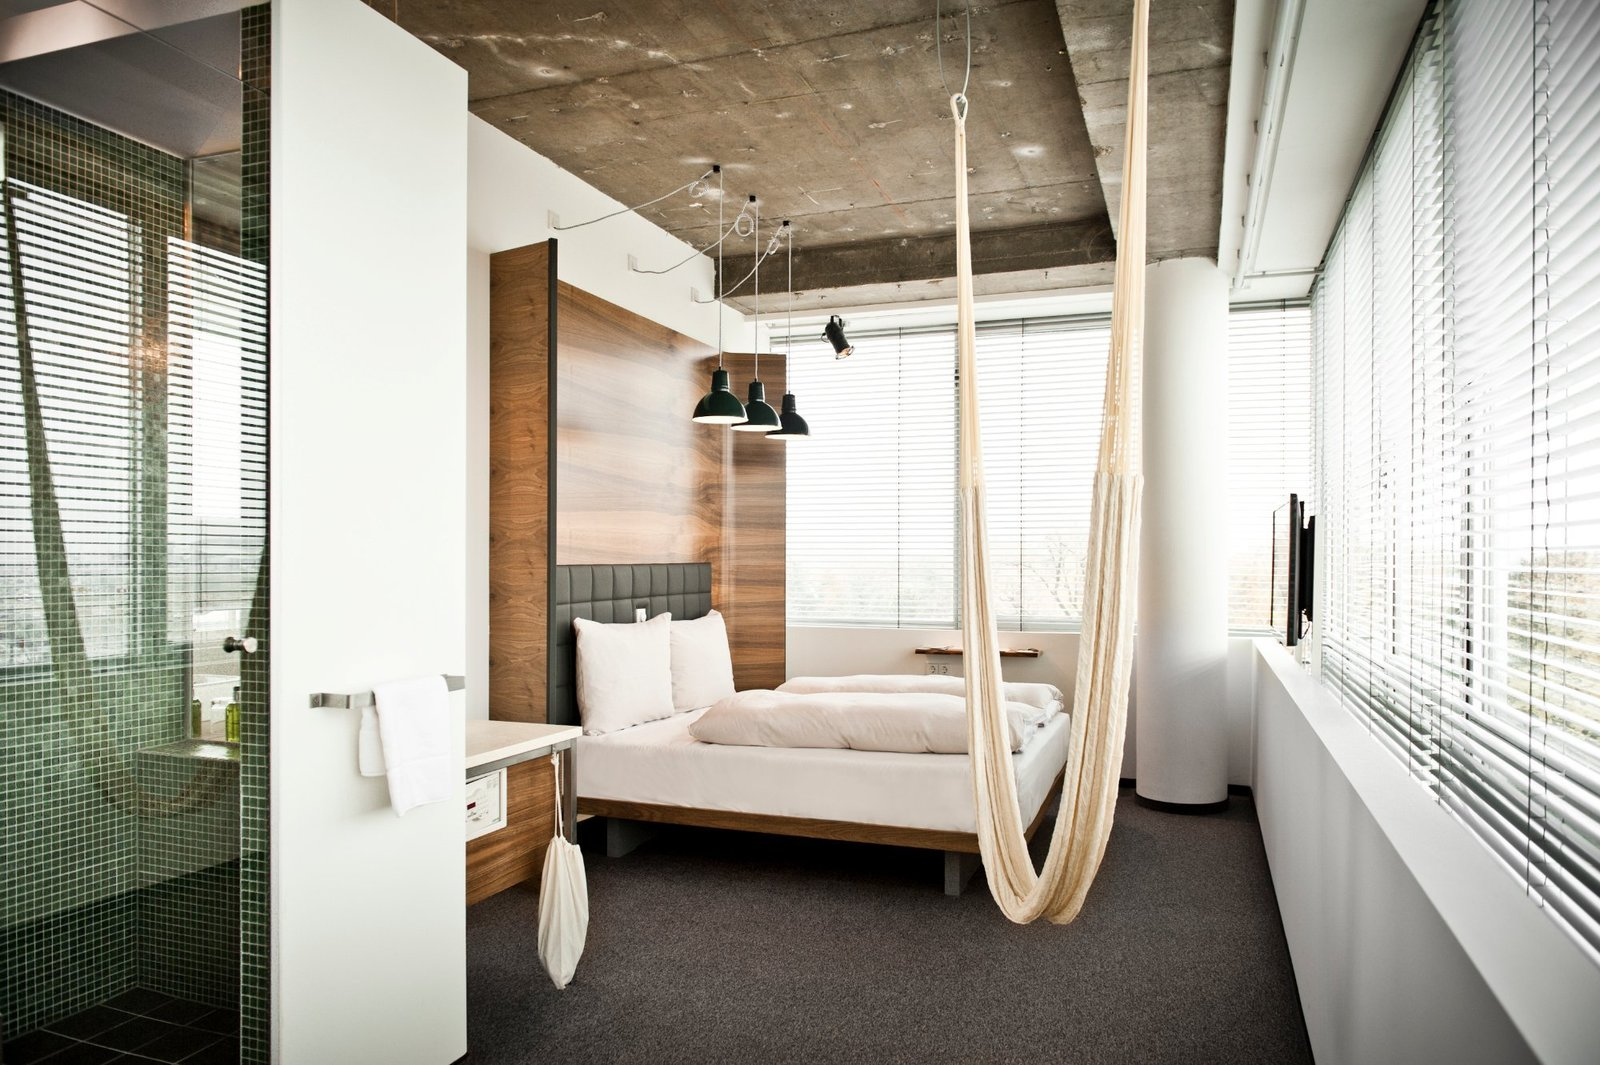 Bedroom, Carpet Floor, Bed, and Pendant Lighting There are no closets and no minibars in the guest rooms, reflecting the designers' minimalist approach. Features include a curved wooden headboard and a hammock hanging from the ceiling. Unfinished ceilings reveal partitions of the old structure, even down to the screws.  Photo 1 of 6 in A Modern Design Hotel in Vienna